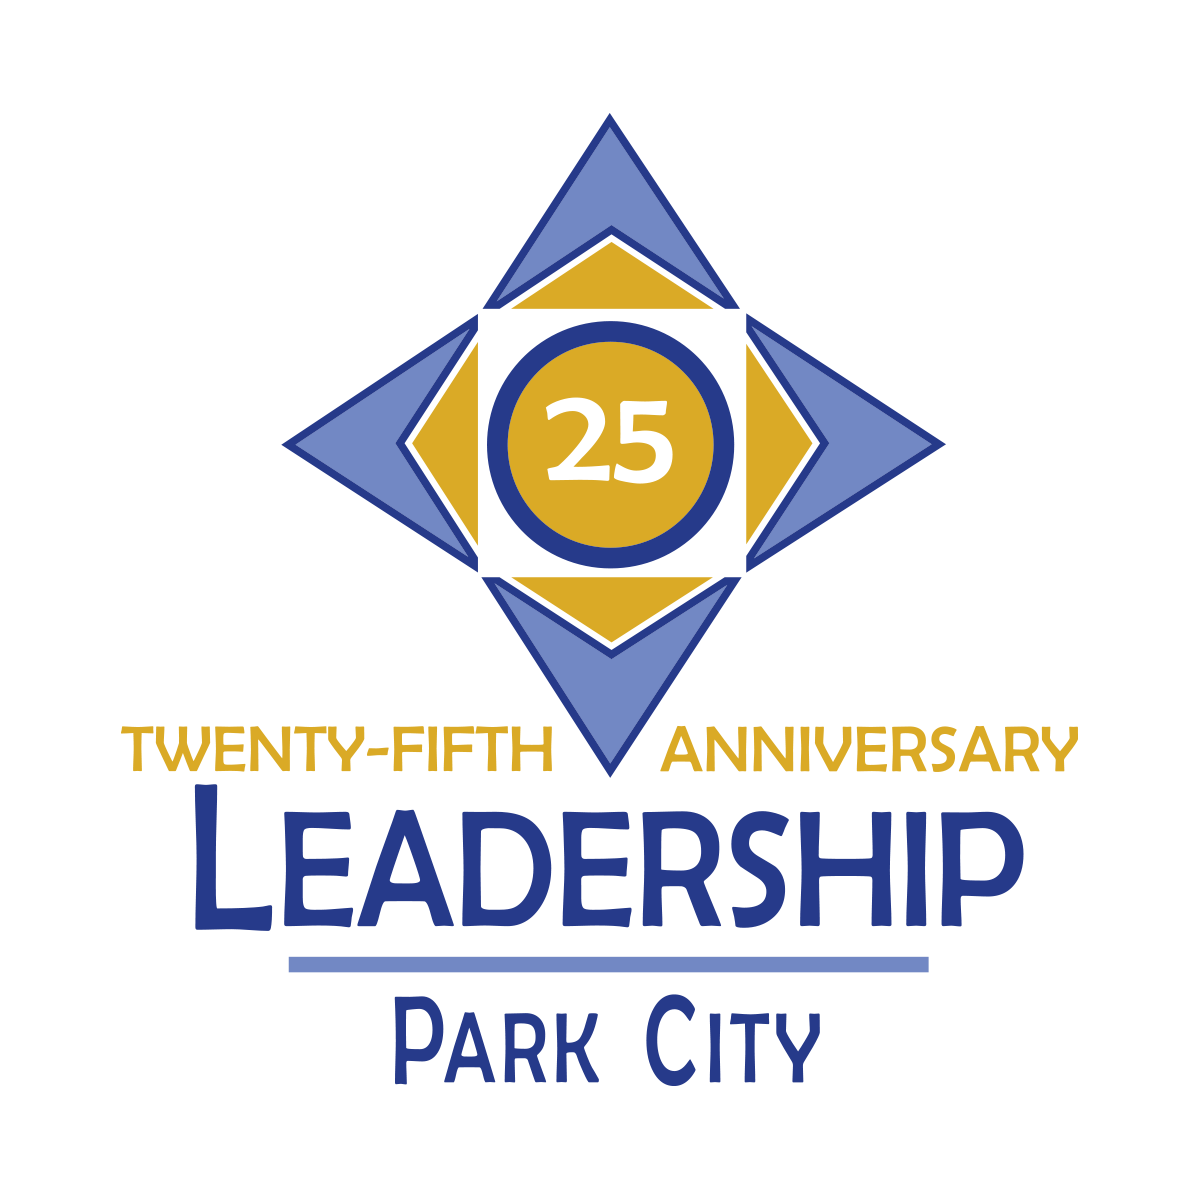 Park City Leadership 25th Anniversary Logo